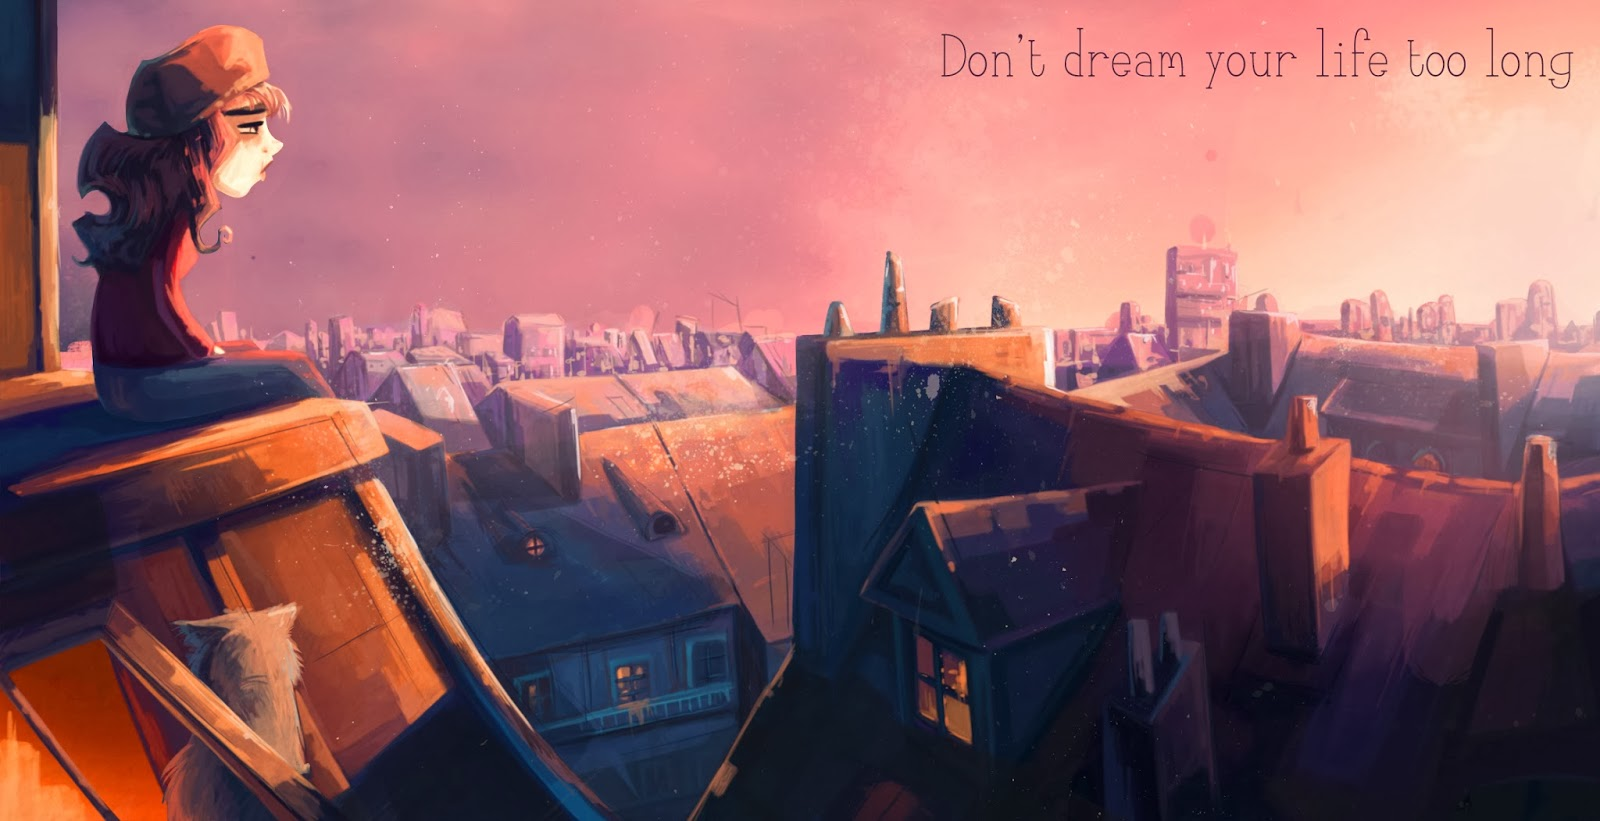 Don't dream your life too long